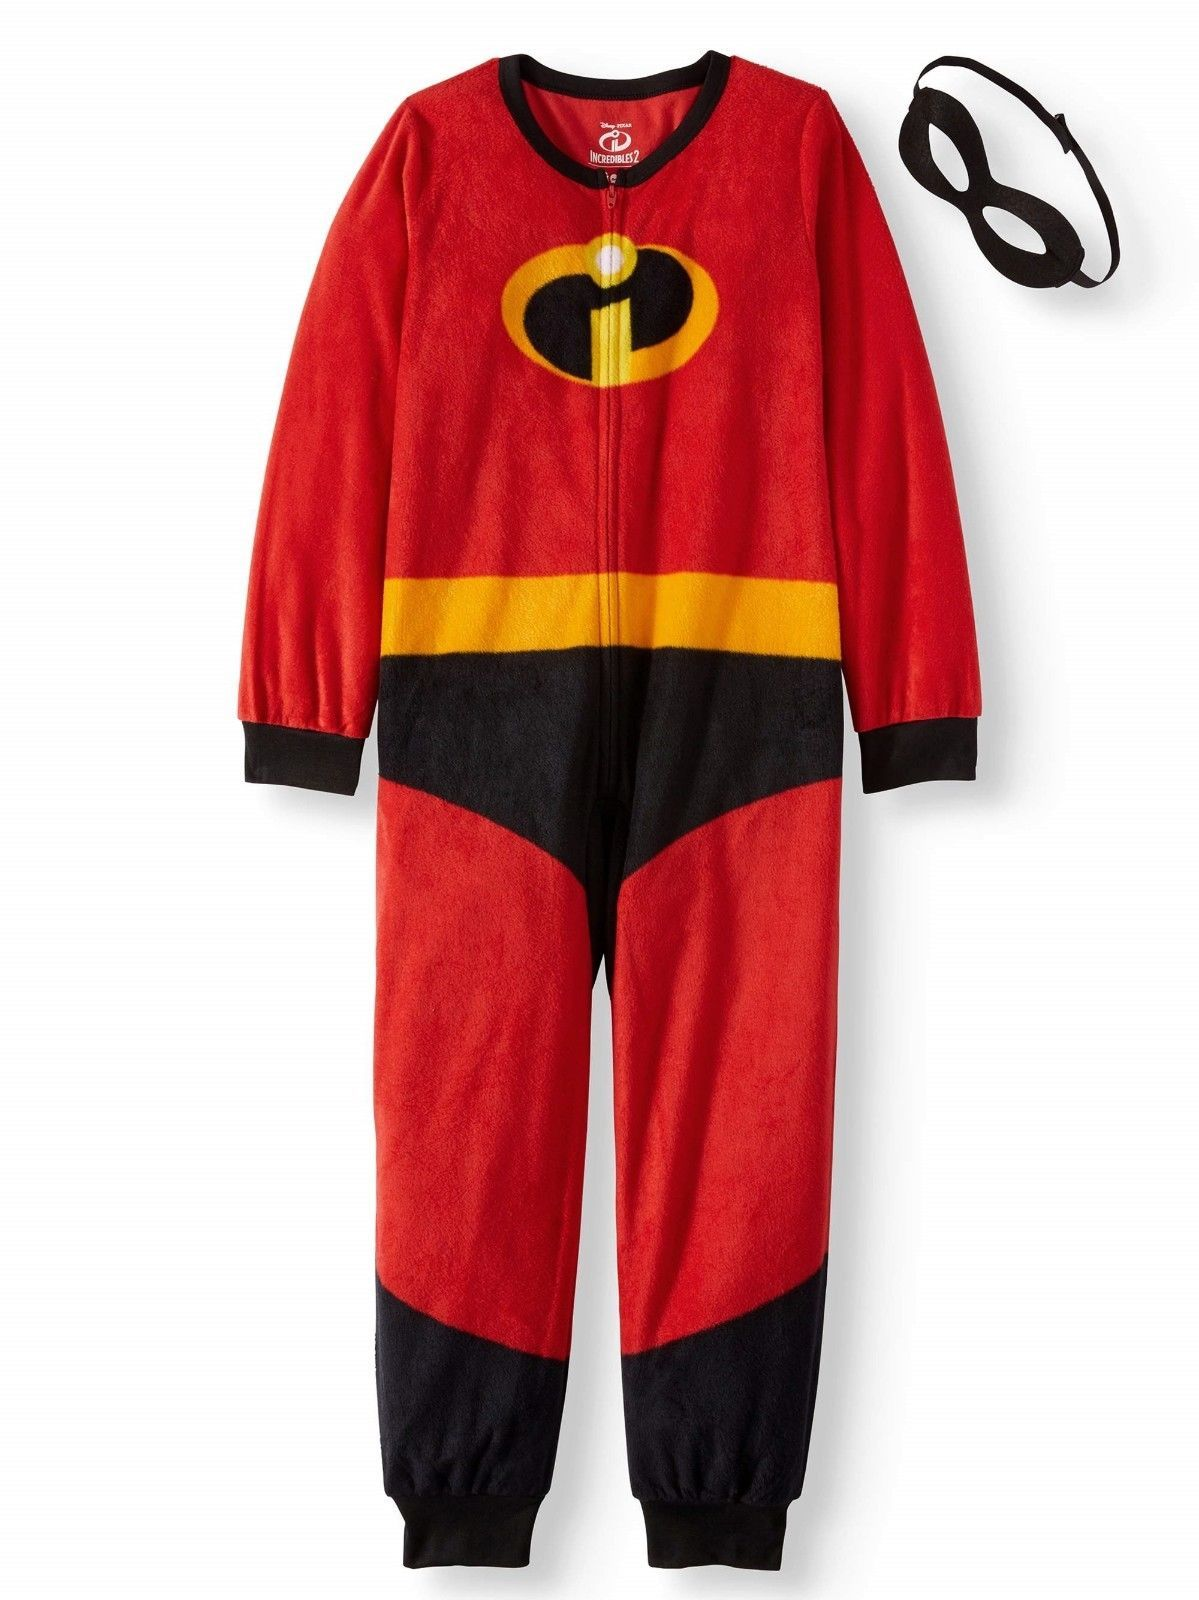 d3445757d Sleepwear 84544  The Incredibles Pajamas Size 8